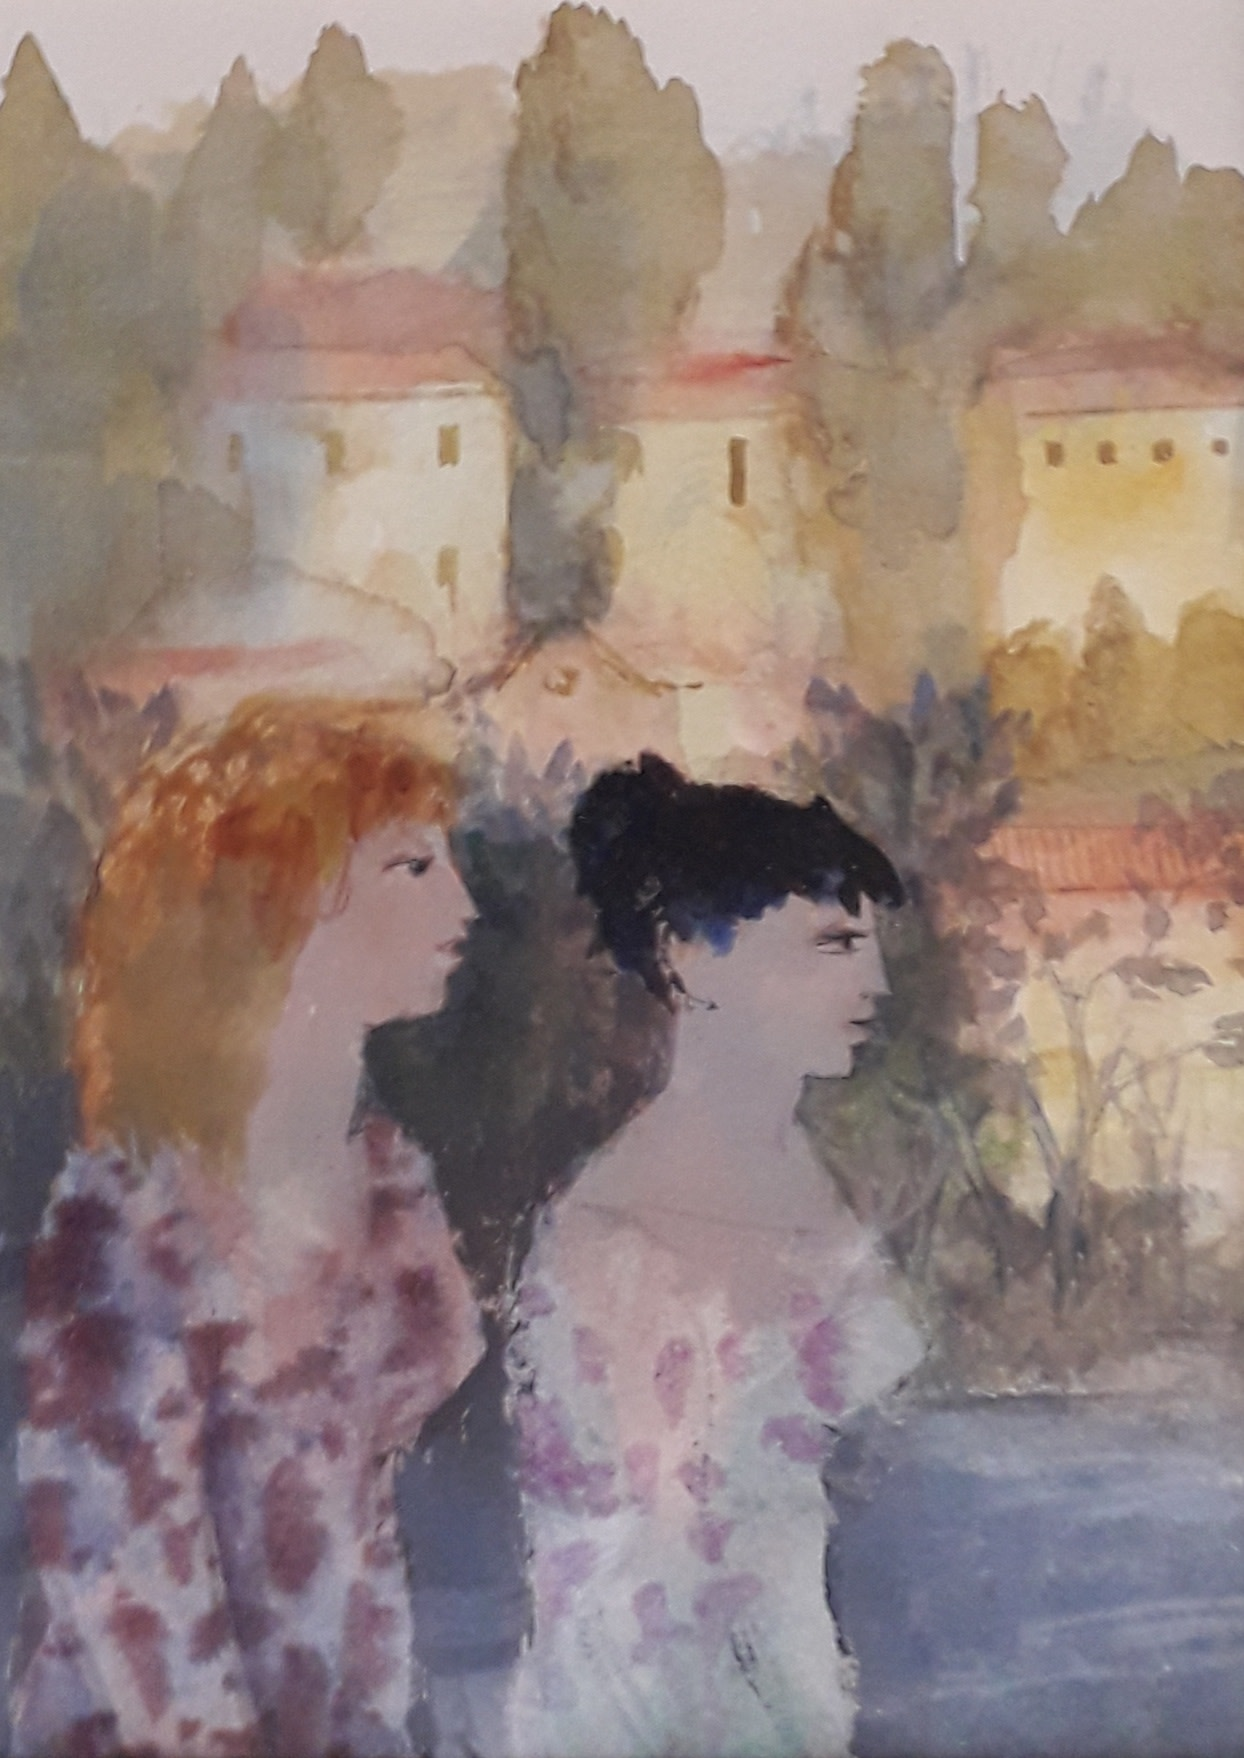 """<span class=""""link fancybox-details-link""""><a href=""""/artists/103-richard-sorrell/works/12319-richard-sorrell-two-ladies-in-verona/"""">View Detail Page</a></span><div class=""""artist""""><span class=""""artist""""><strong>Richard Sorrell</strong></span></div><div class=""""title""""><em>Two Ladies in Verona</em></div><div class=""""medium"""">watercolour<br /> </div><div class=""""dimensions"""">Frame: 54 x 43 cm<br /> Artwork: 38 x 27 cm</div><div class=""""price"""">£900.00</div>"""